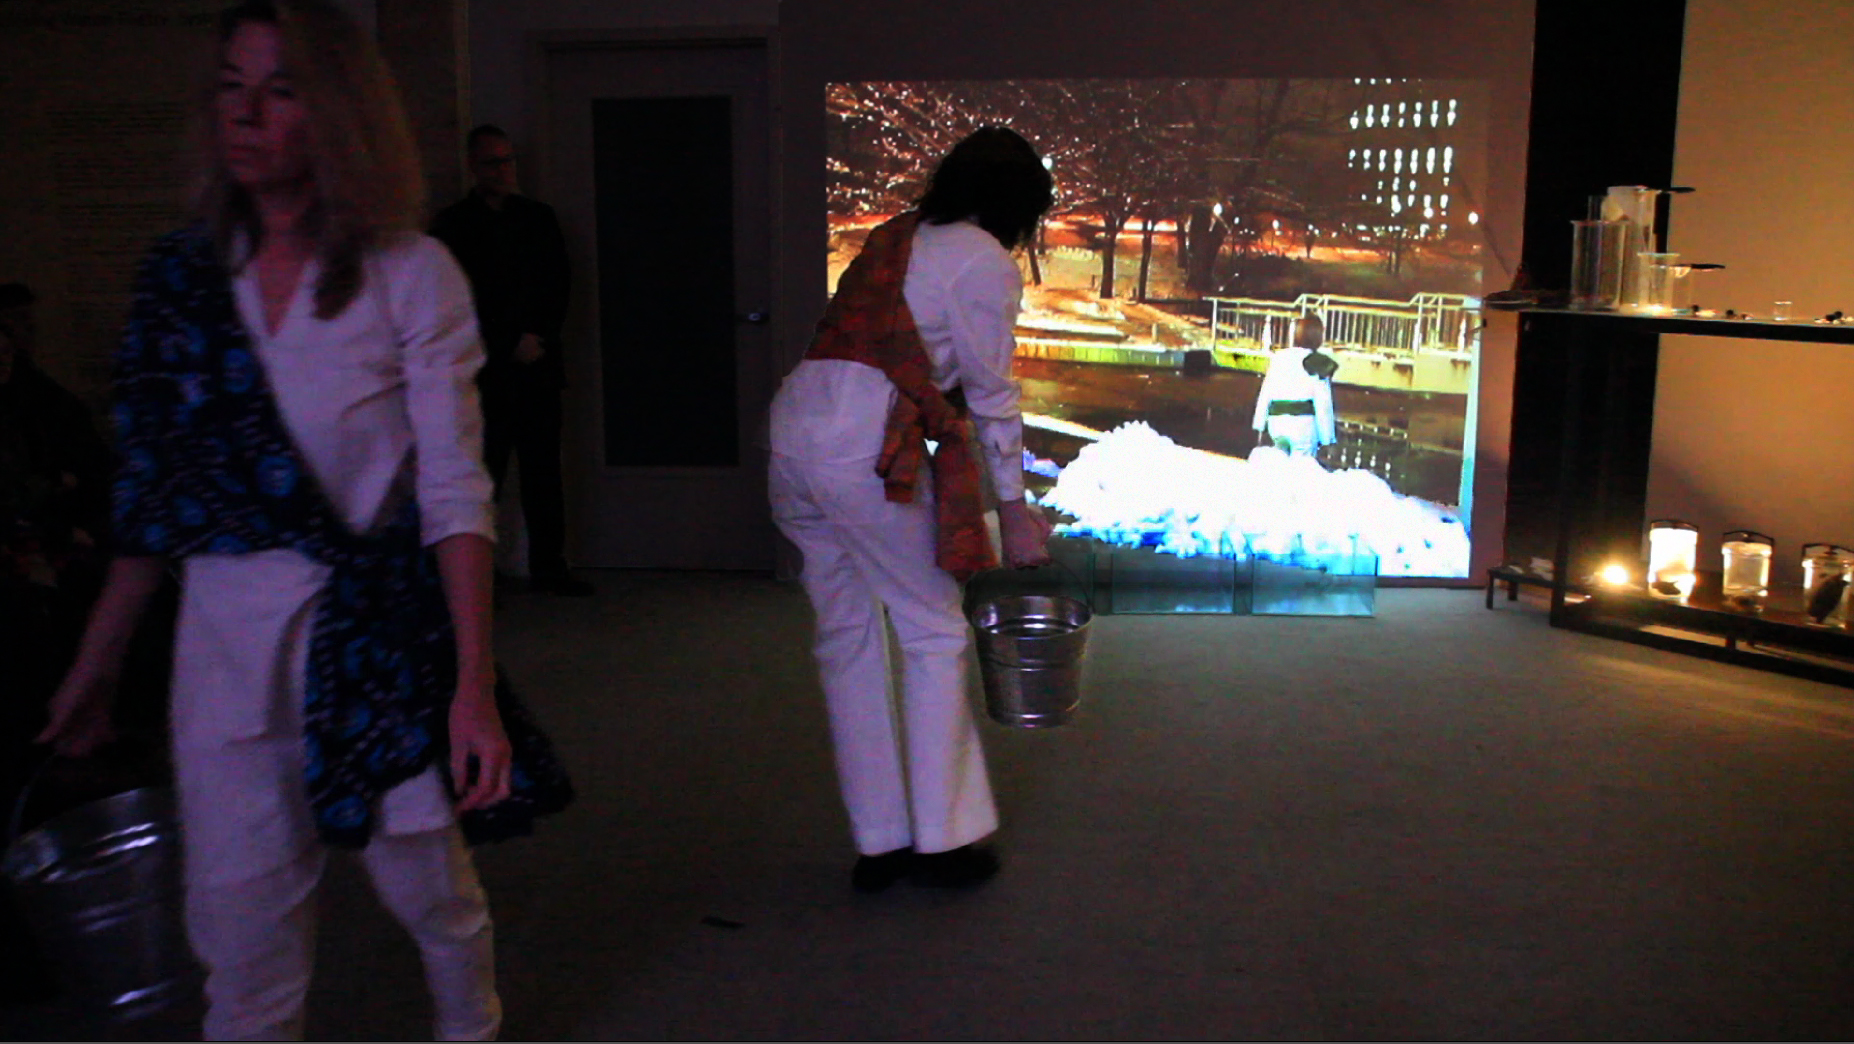 Mary Averill and Jessica Higgins (indoors) andLesley Farlow (outdoors in live feed video), performing Walking Water by David Teeple.